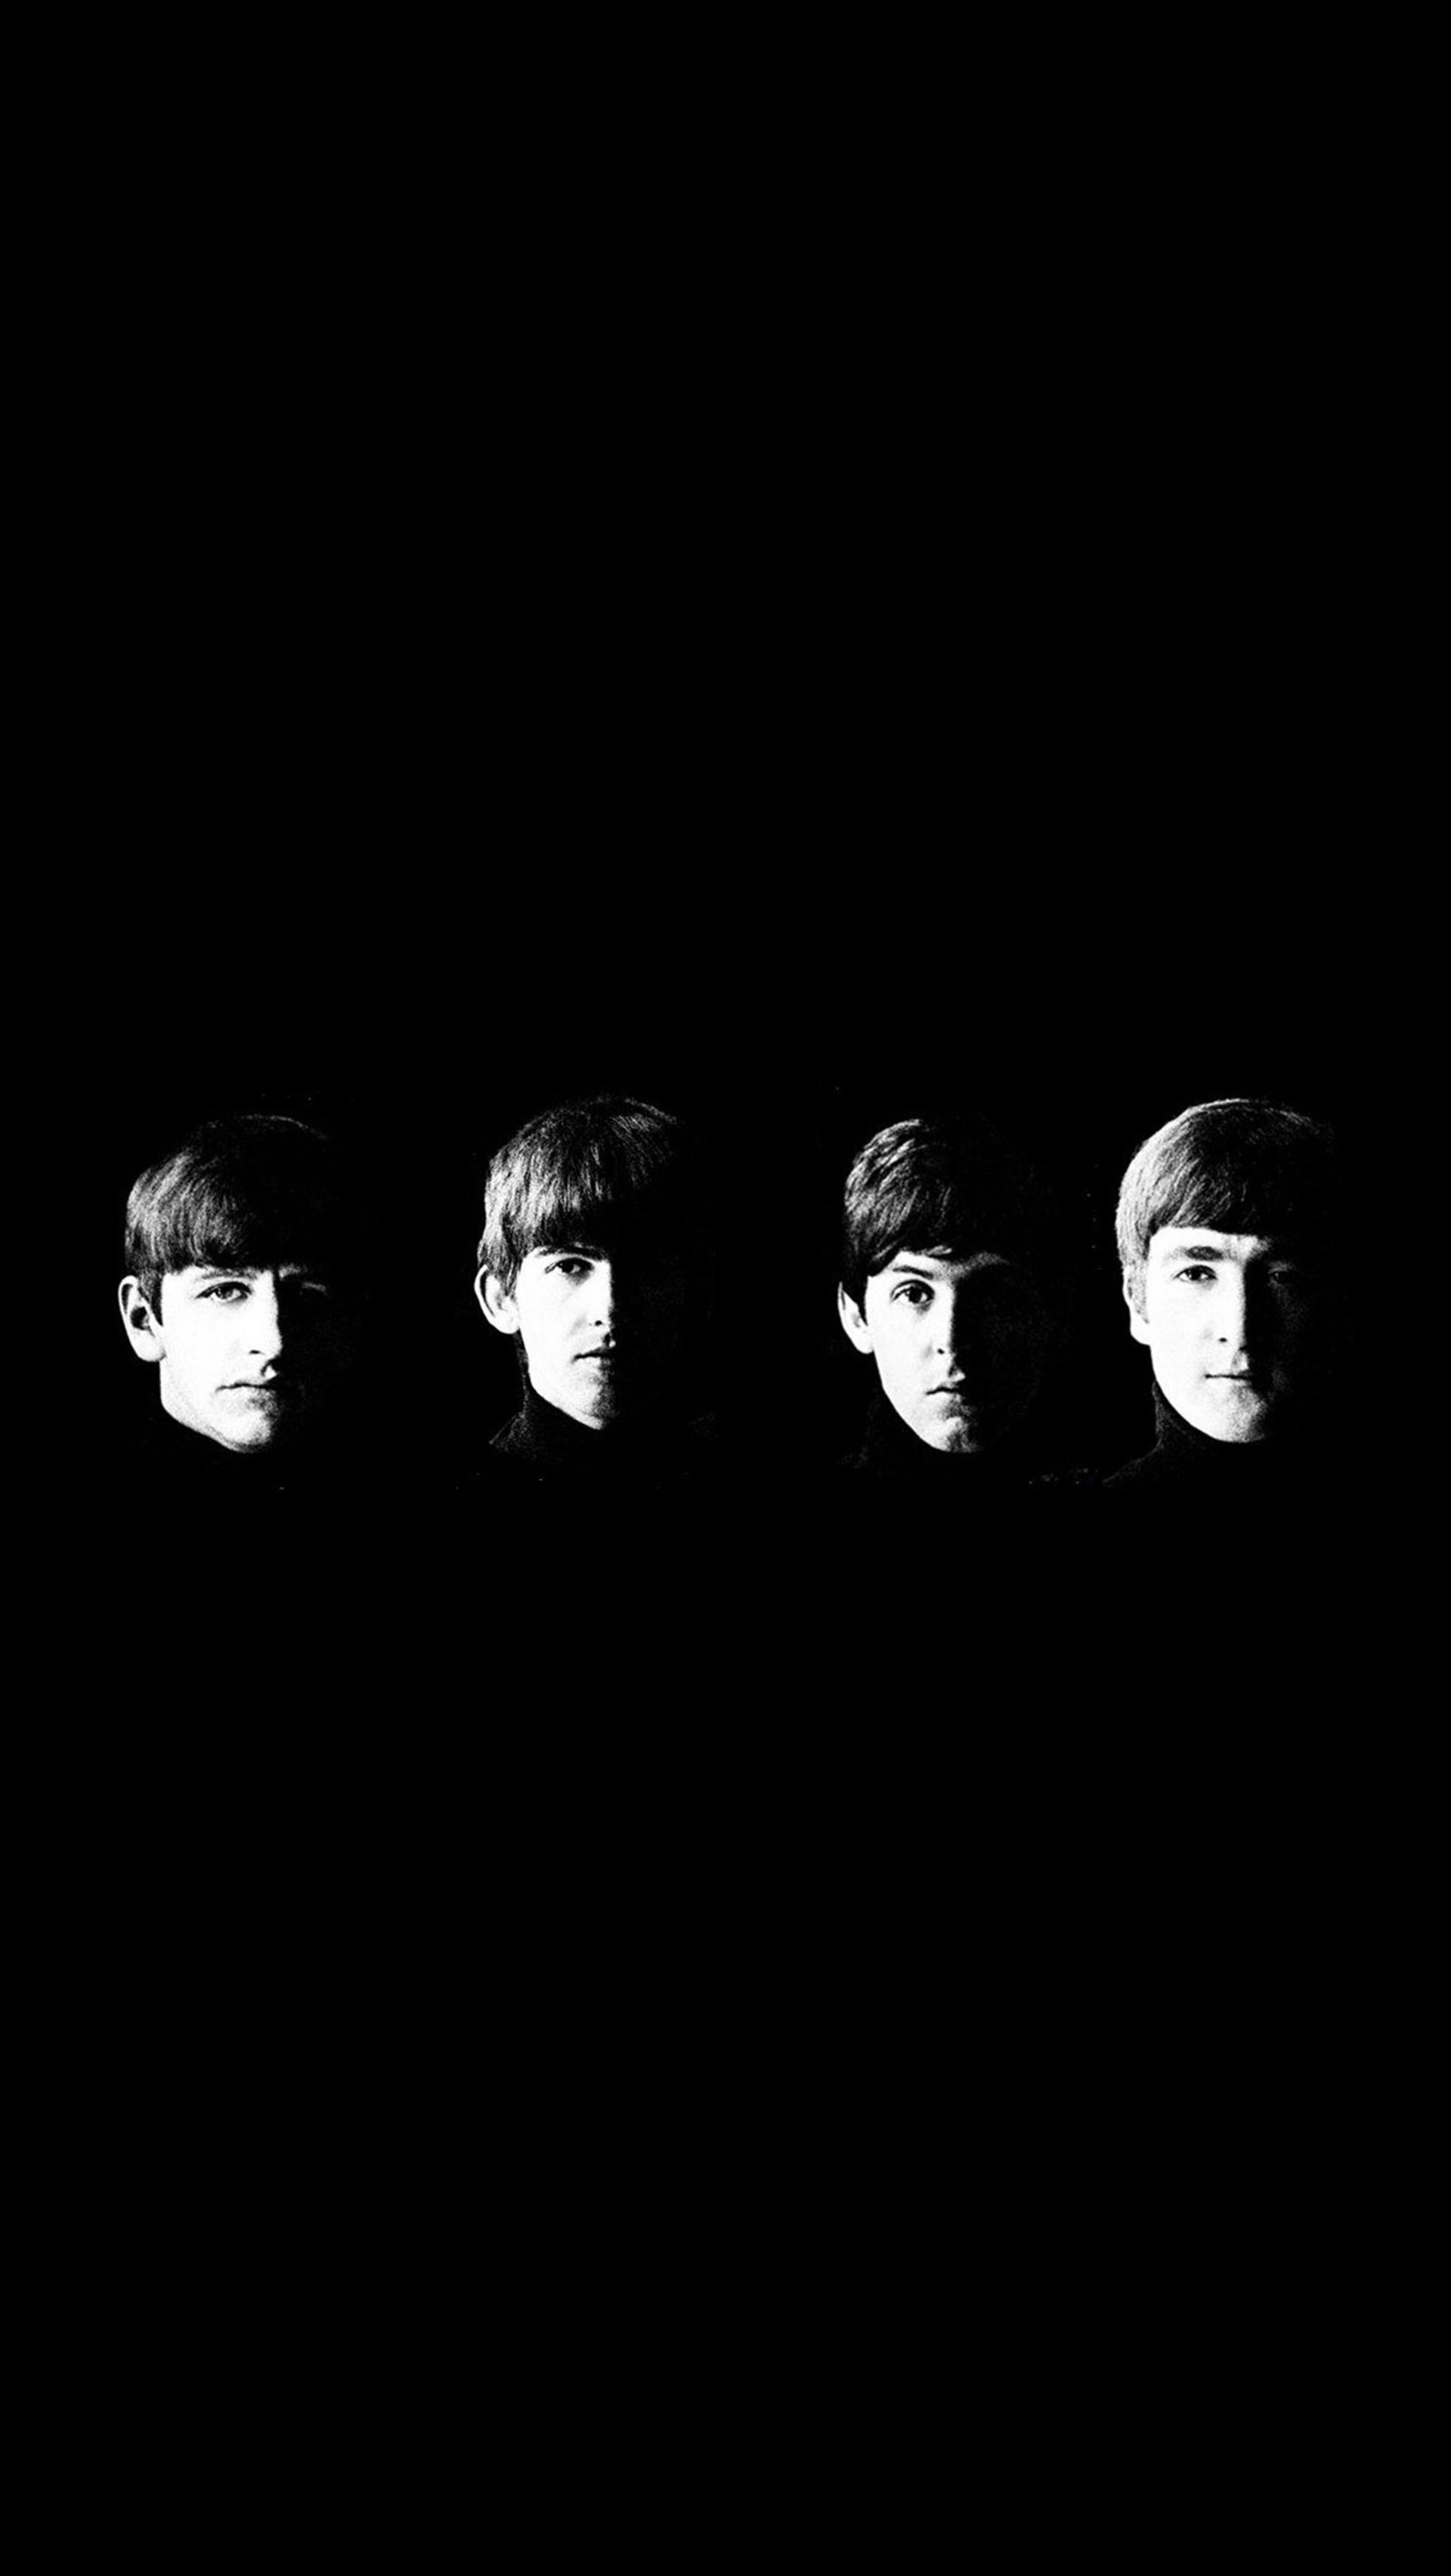 The Beatles Wallpaper For Iphone